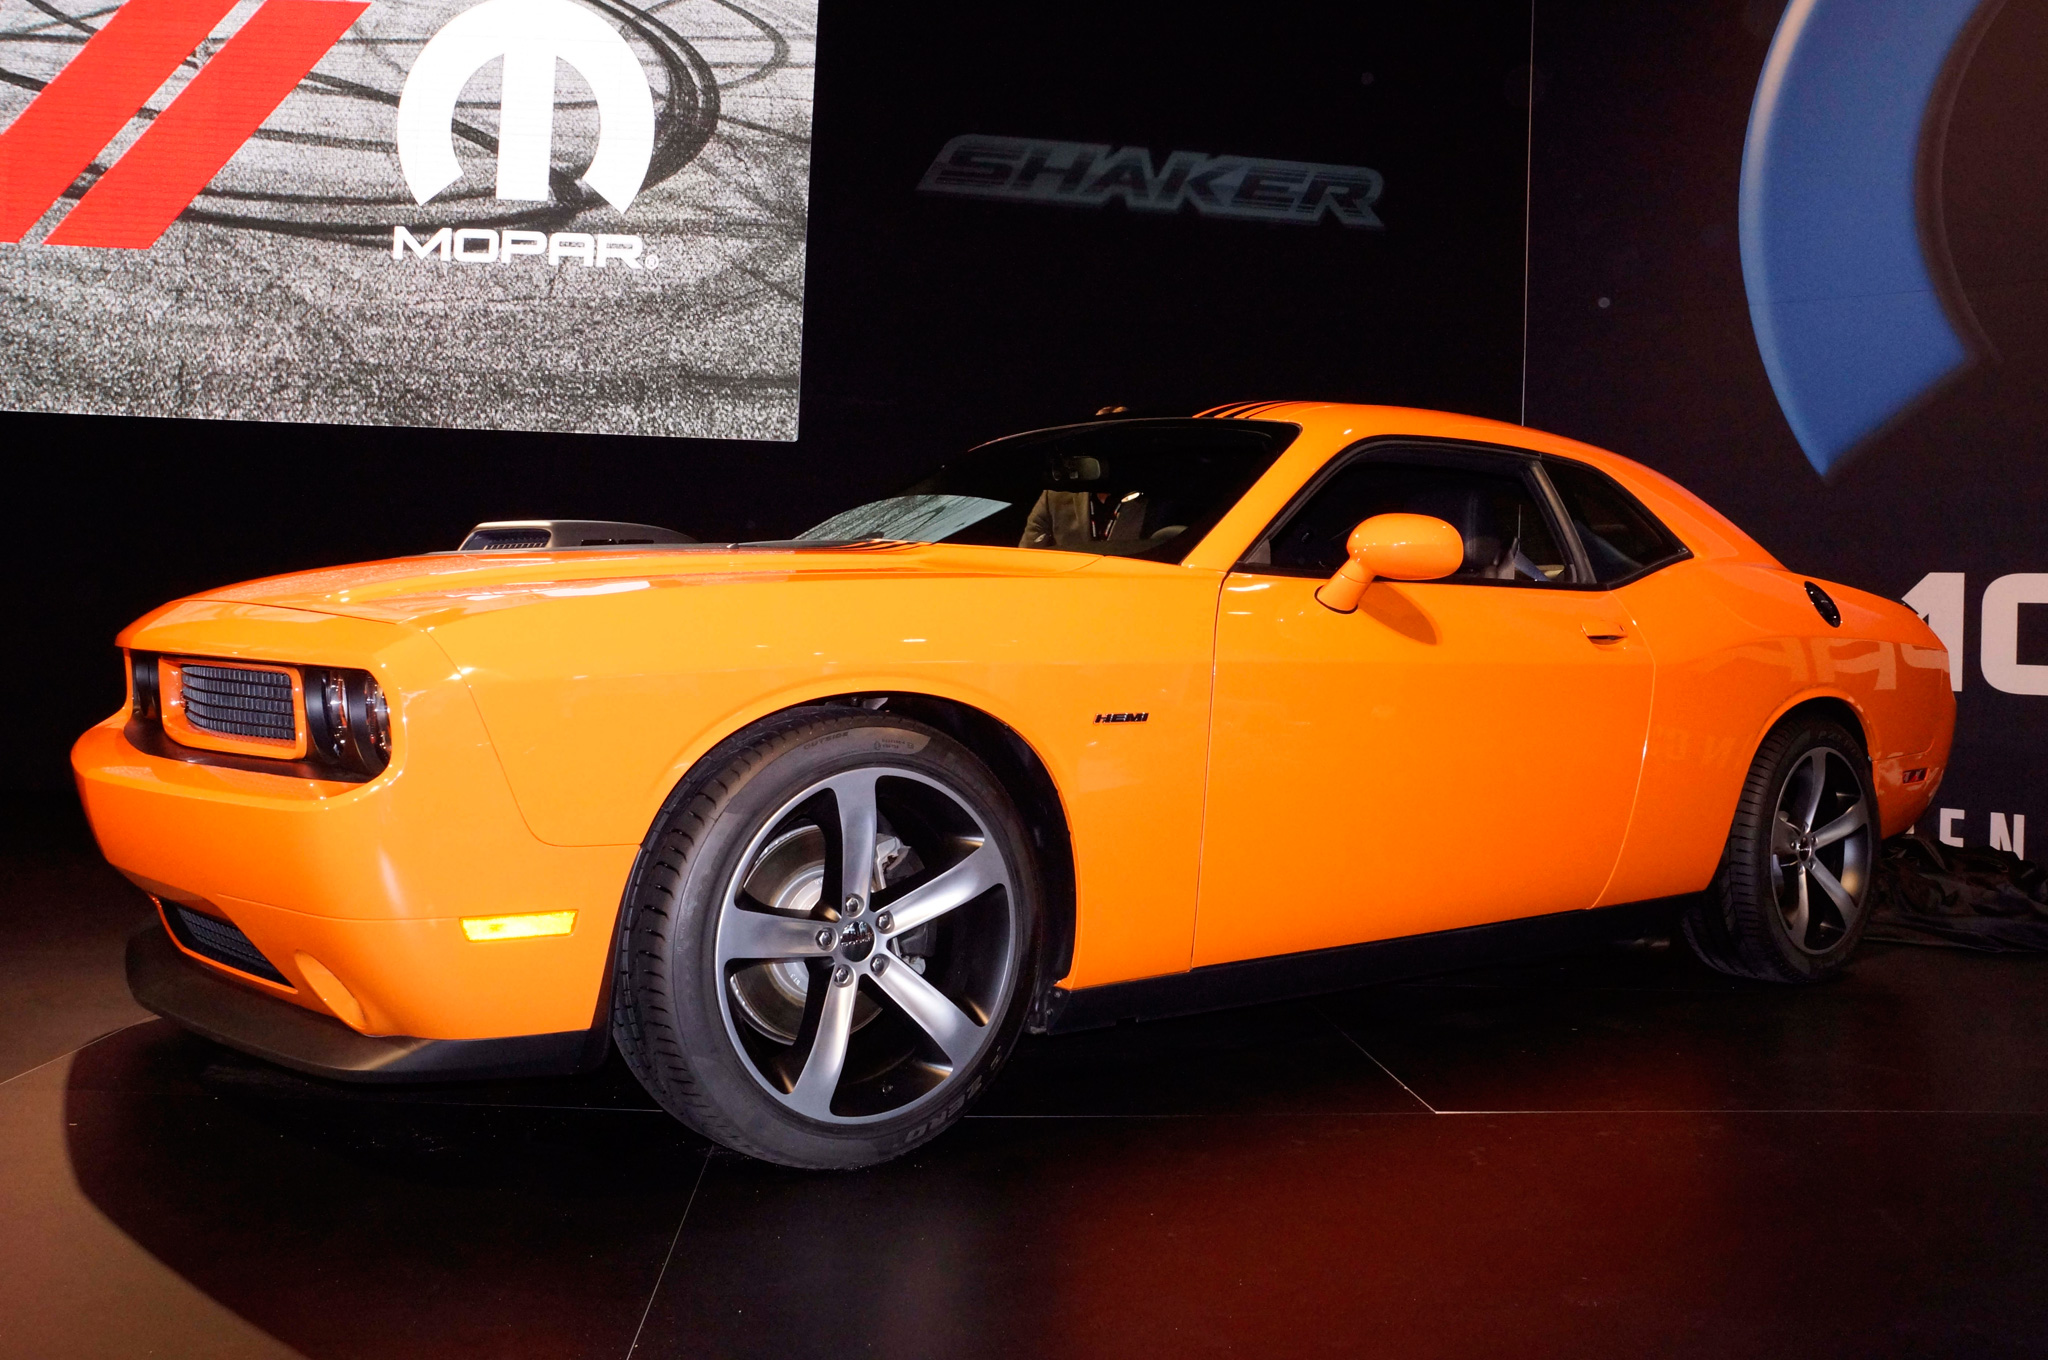 2014 Dodge Challenger Debuts Shaker Hood, Scat Packages at 2013 SEMA Show